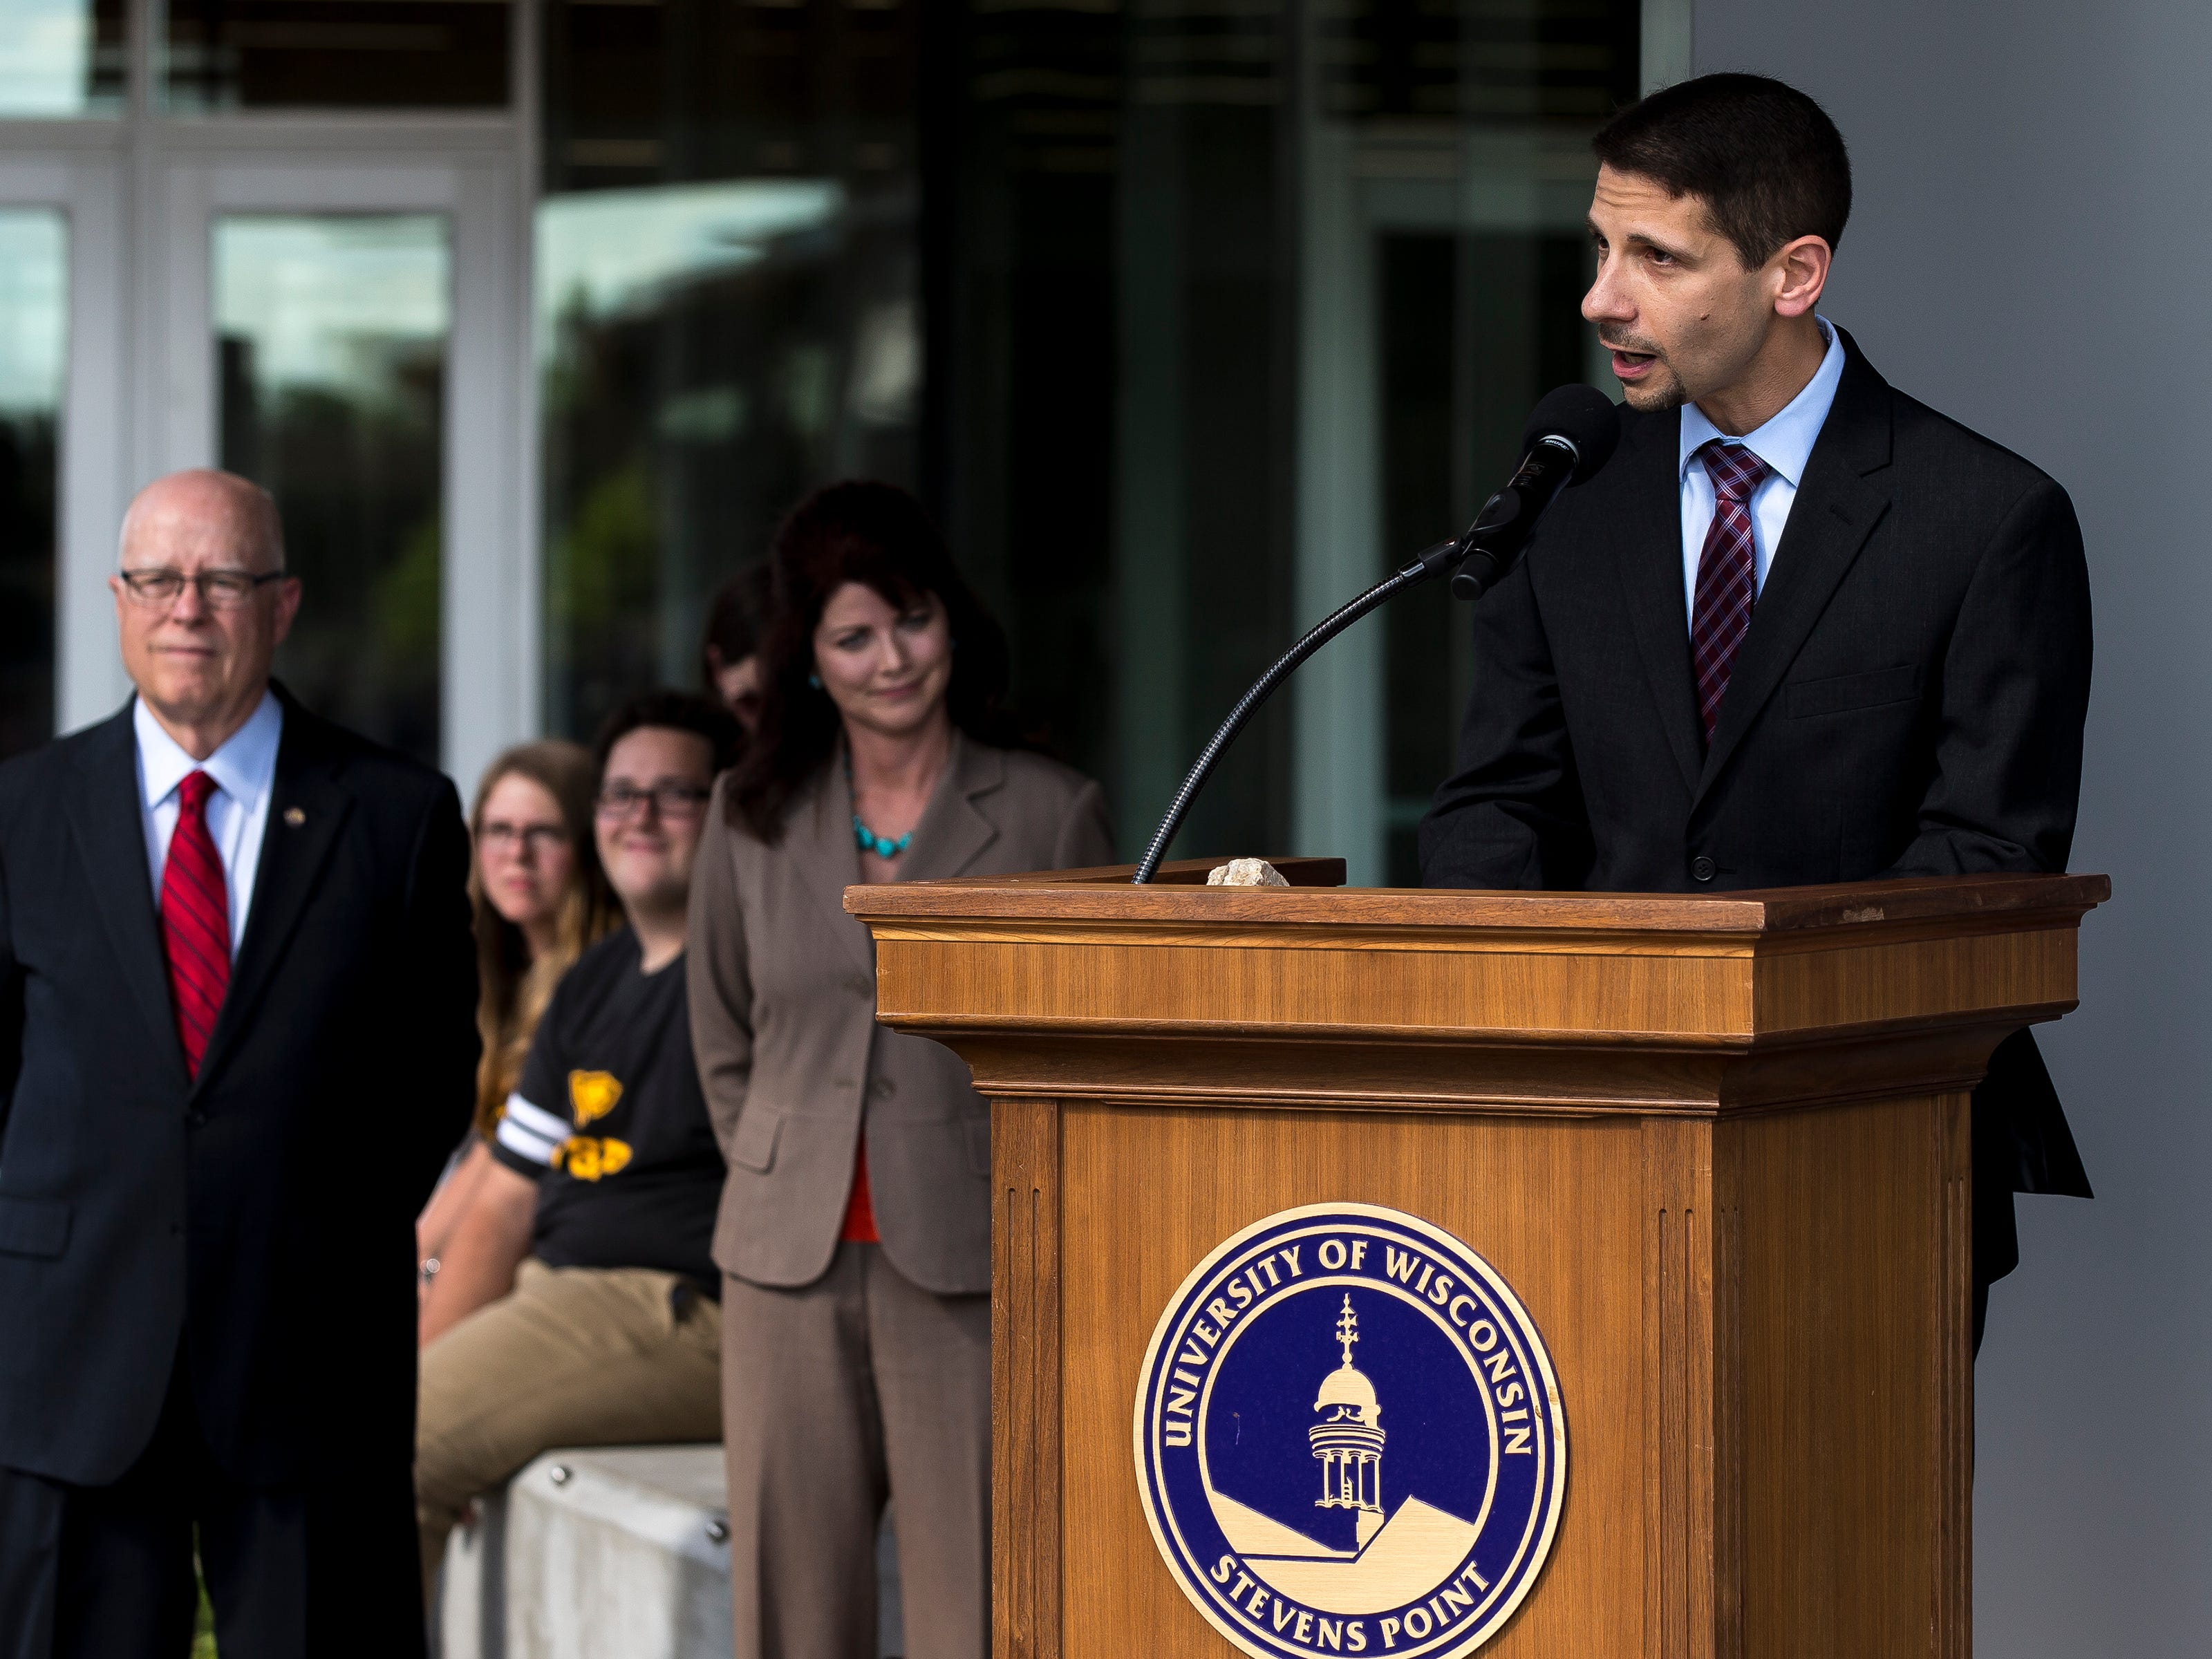 Jason D'Acchioli, professor and chair of the Chemistry Department, speaks during the opening ceremony for the Chemistry Biology Building at the University of Wisconsin-Stevens Point in Stevens Point, Wis., Sept. 14, 2018.